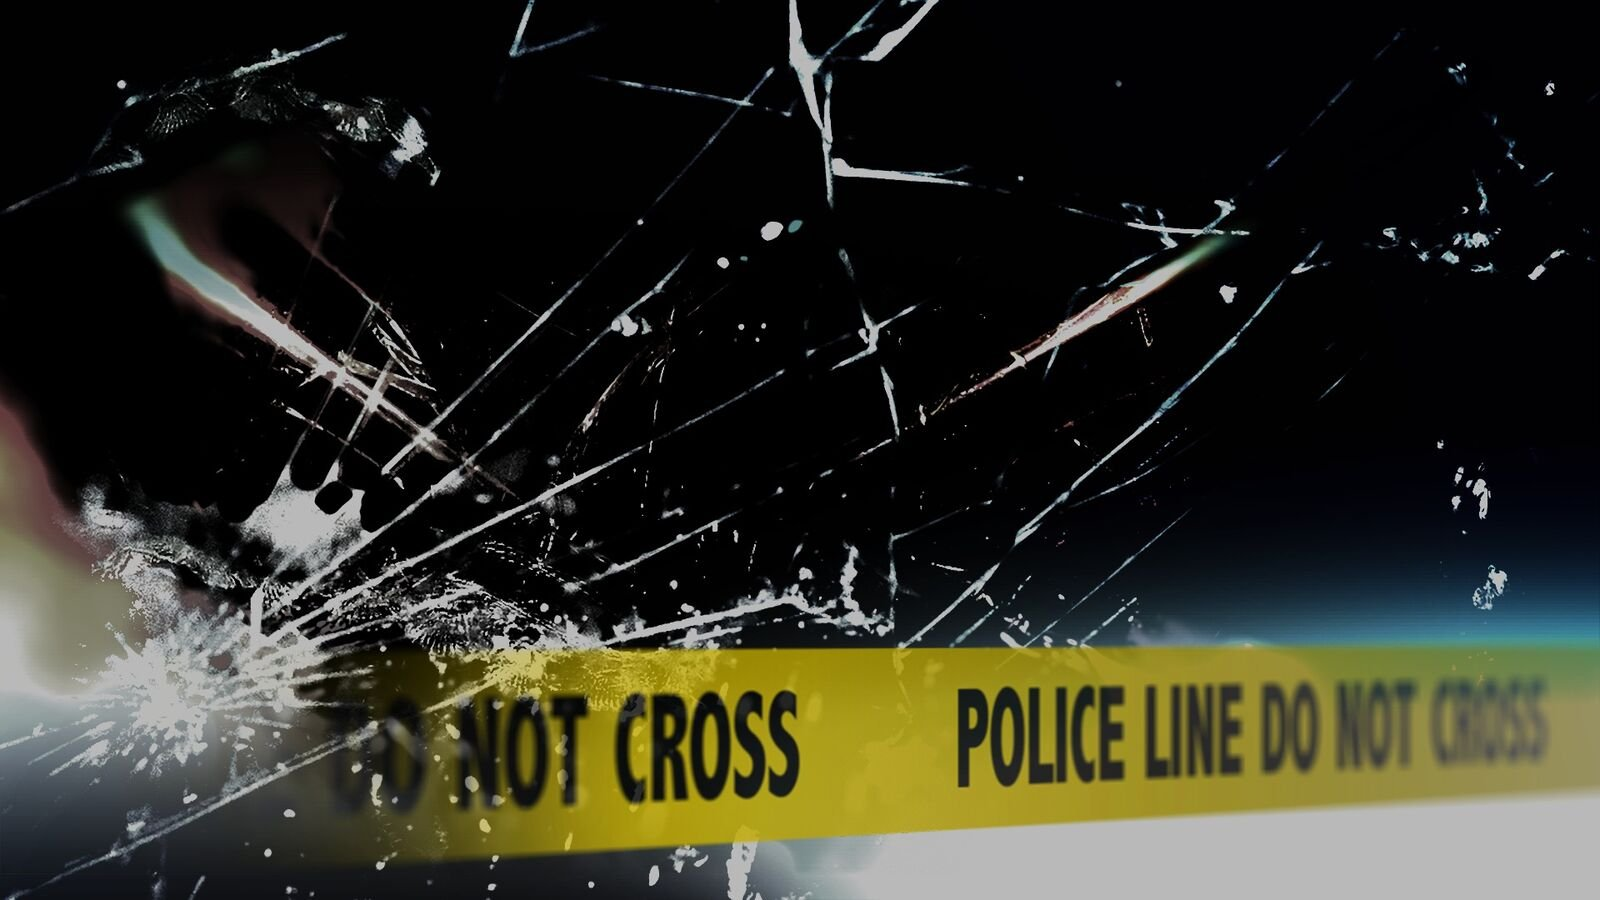 New Mexico State Police say a Tucson man has died in a motorcycle crash near Deming. (Source: AP Images)